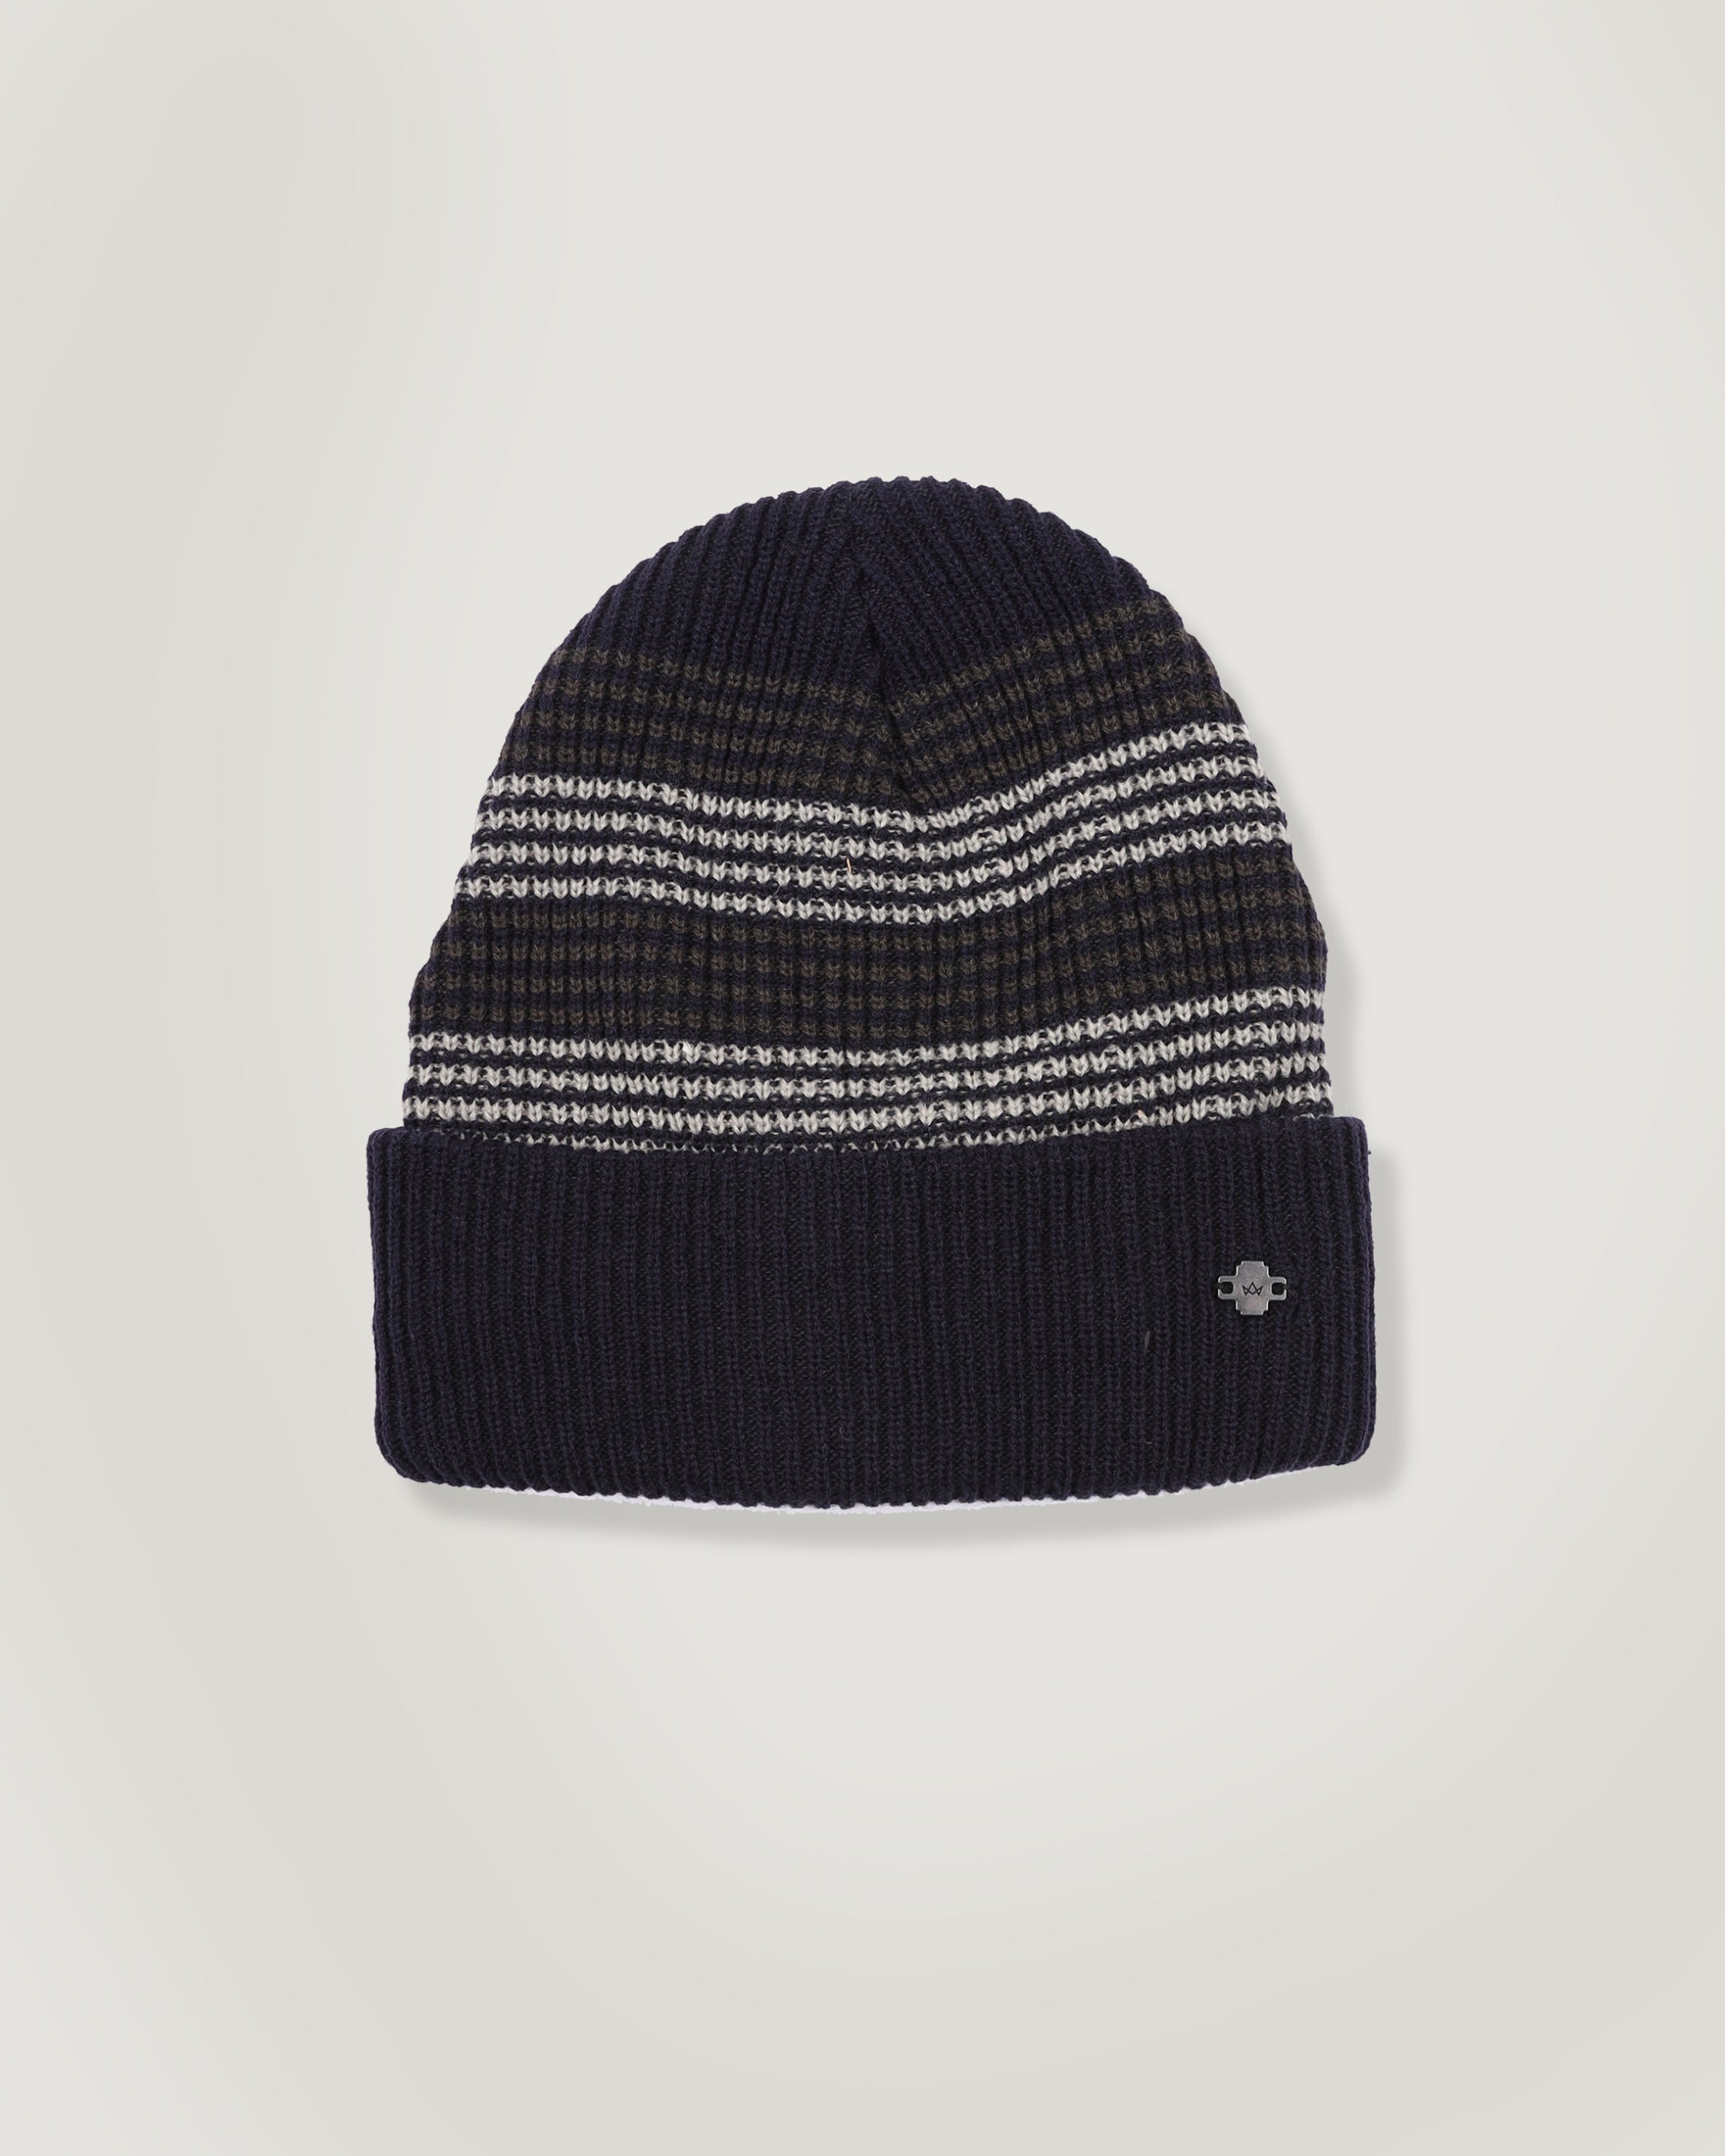 TEXTURED ACRYLIC WOOL HAT